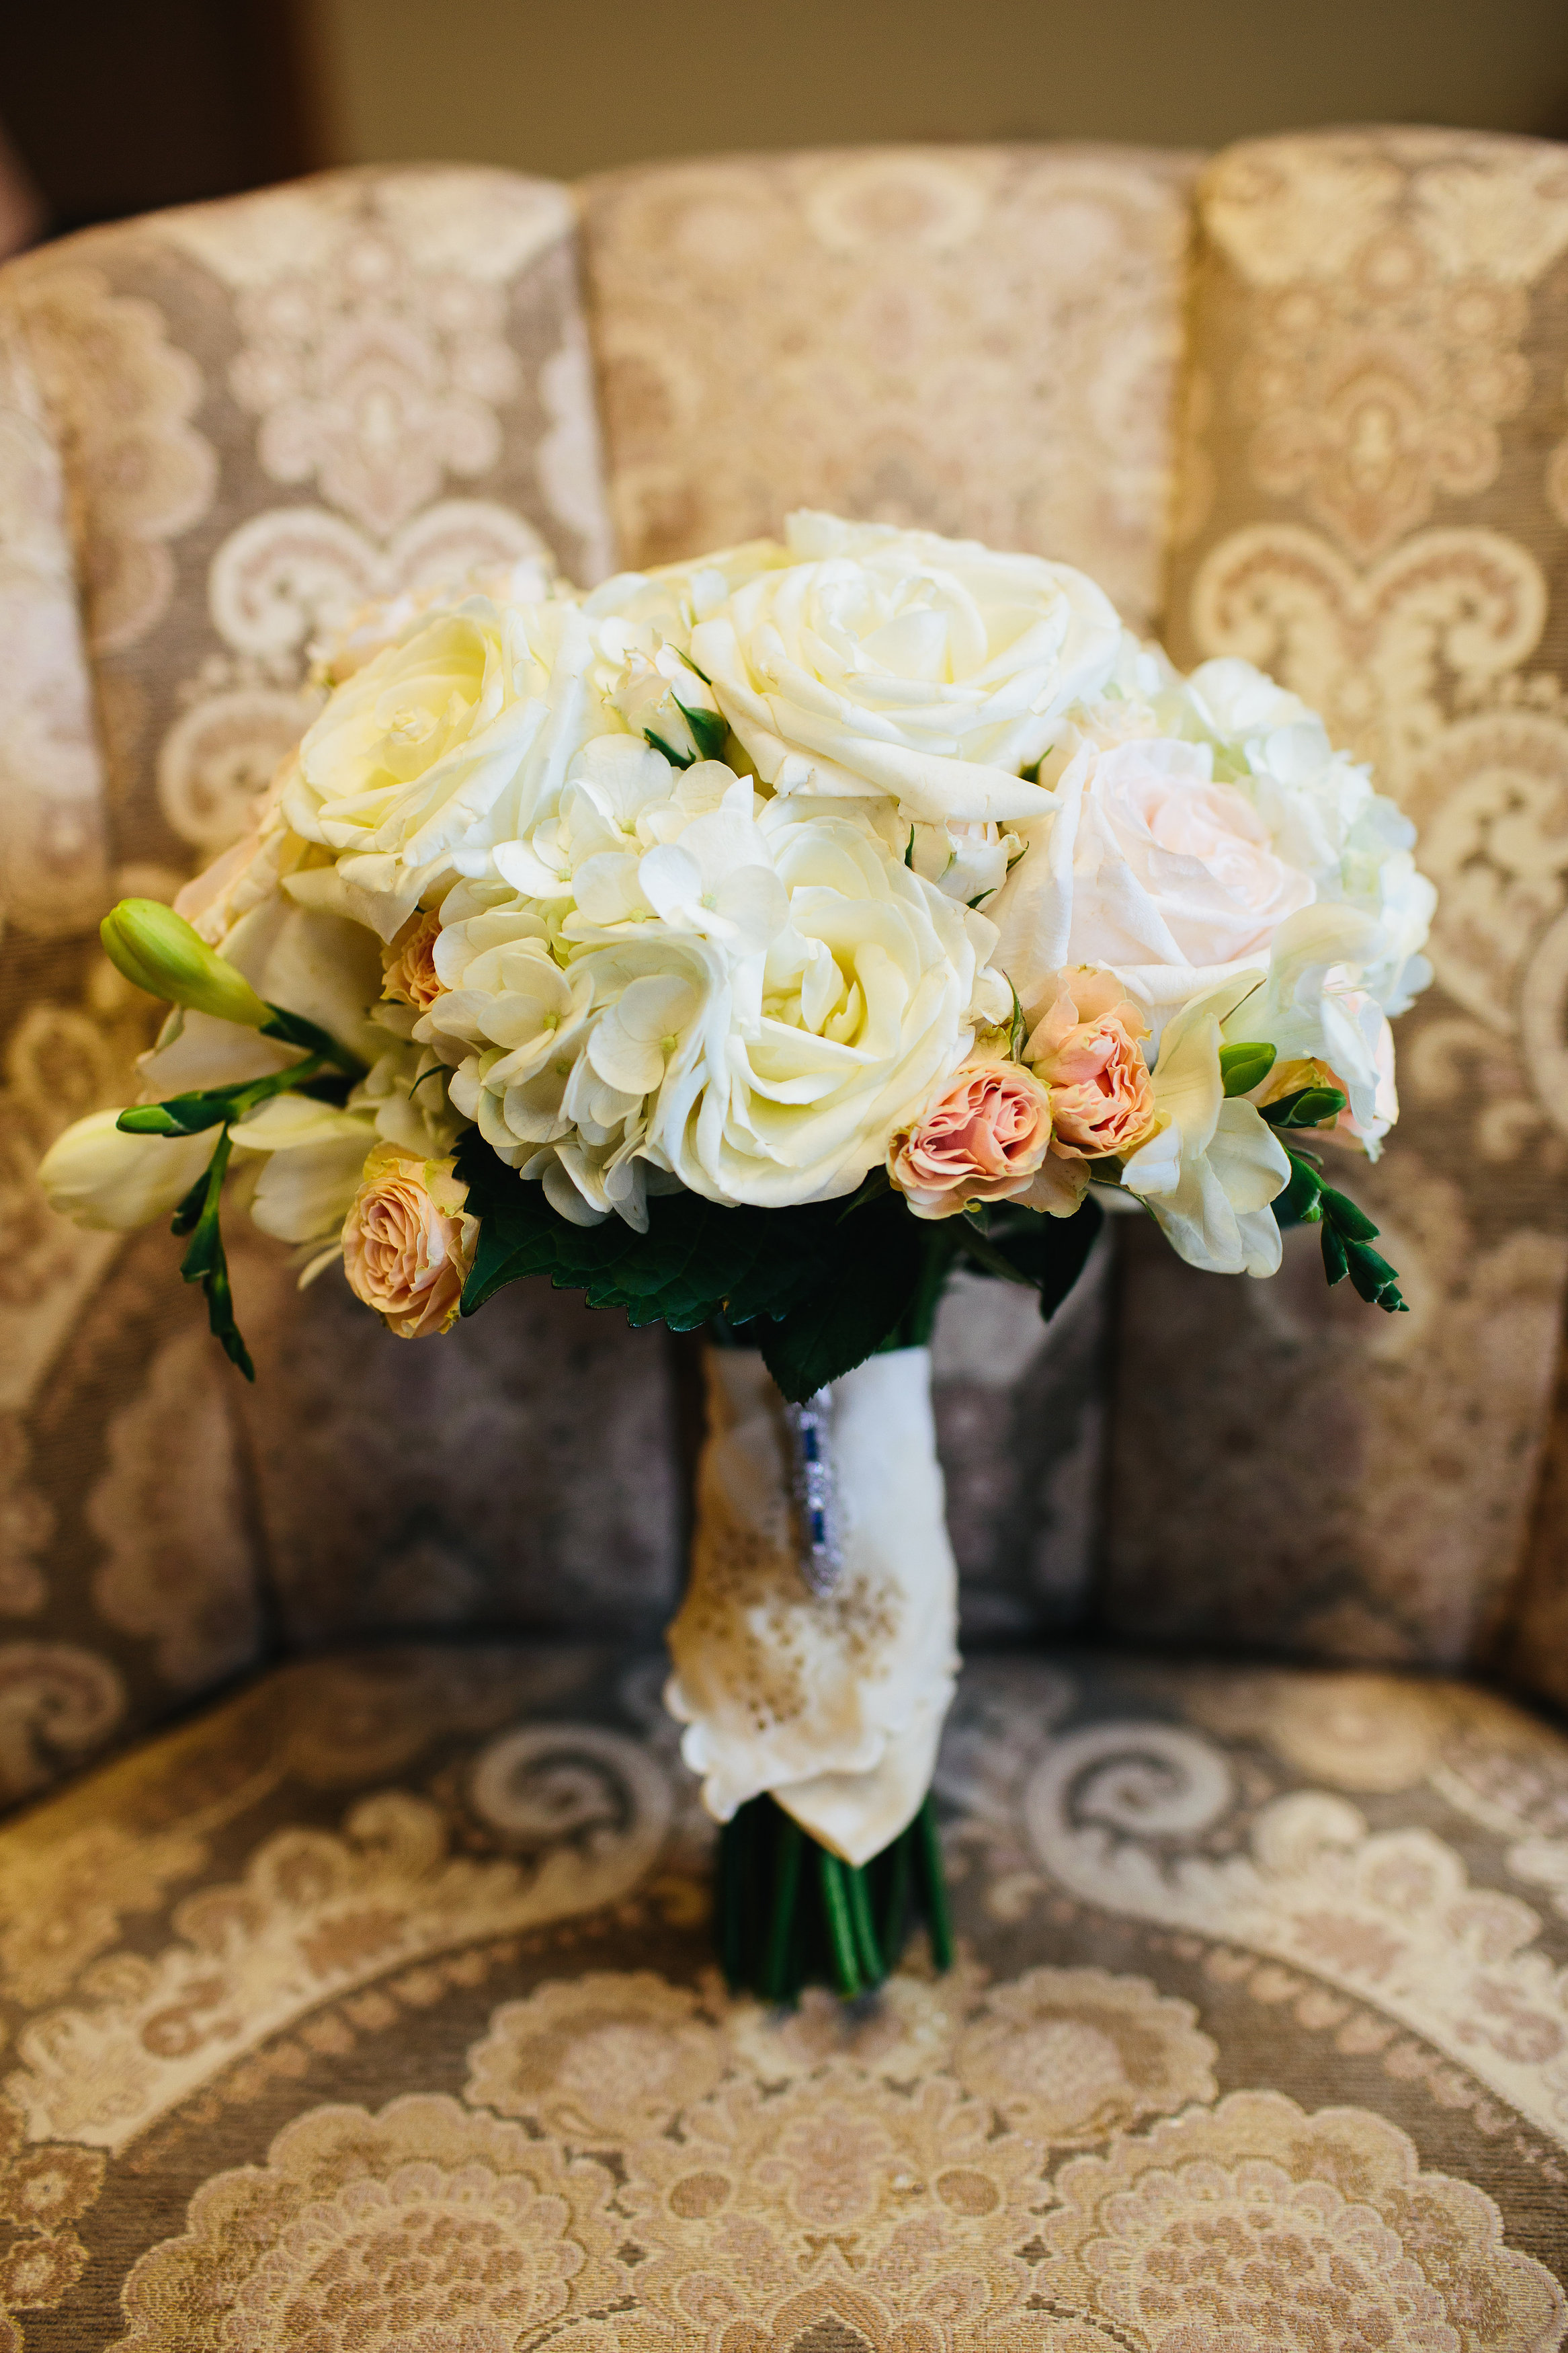 Molly_Kirk_Bouquet_Simply_Yours_Weddings_Flowers_Houston_Station.JPG